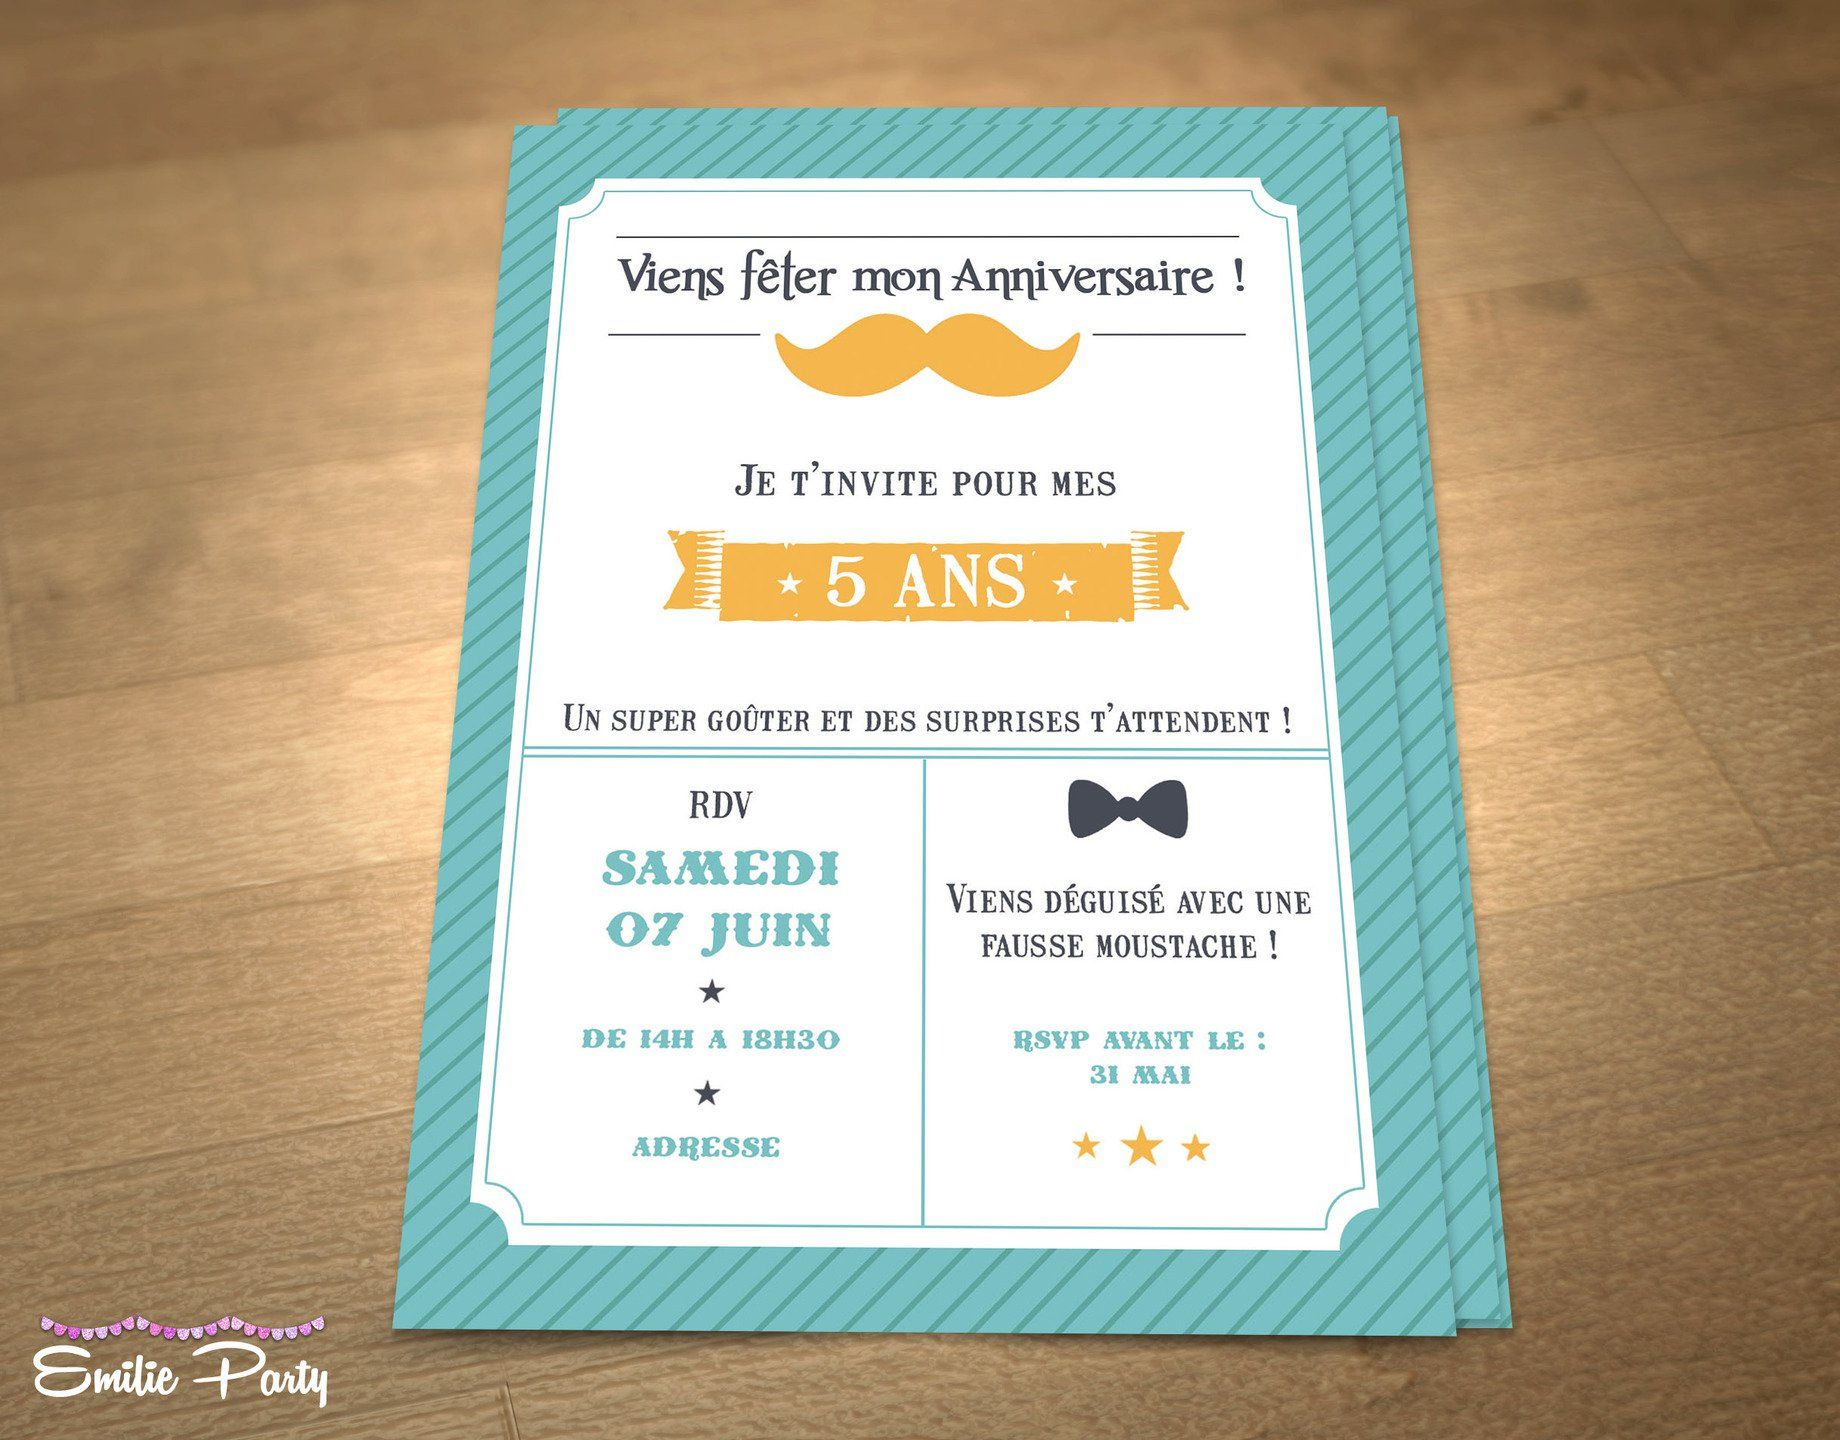 carte invitation anniversaire gratuite carte d invitation pour anniversaire carte. Black Bedroom Furniture Sets. Home Design Ideas